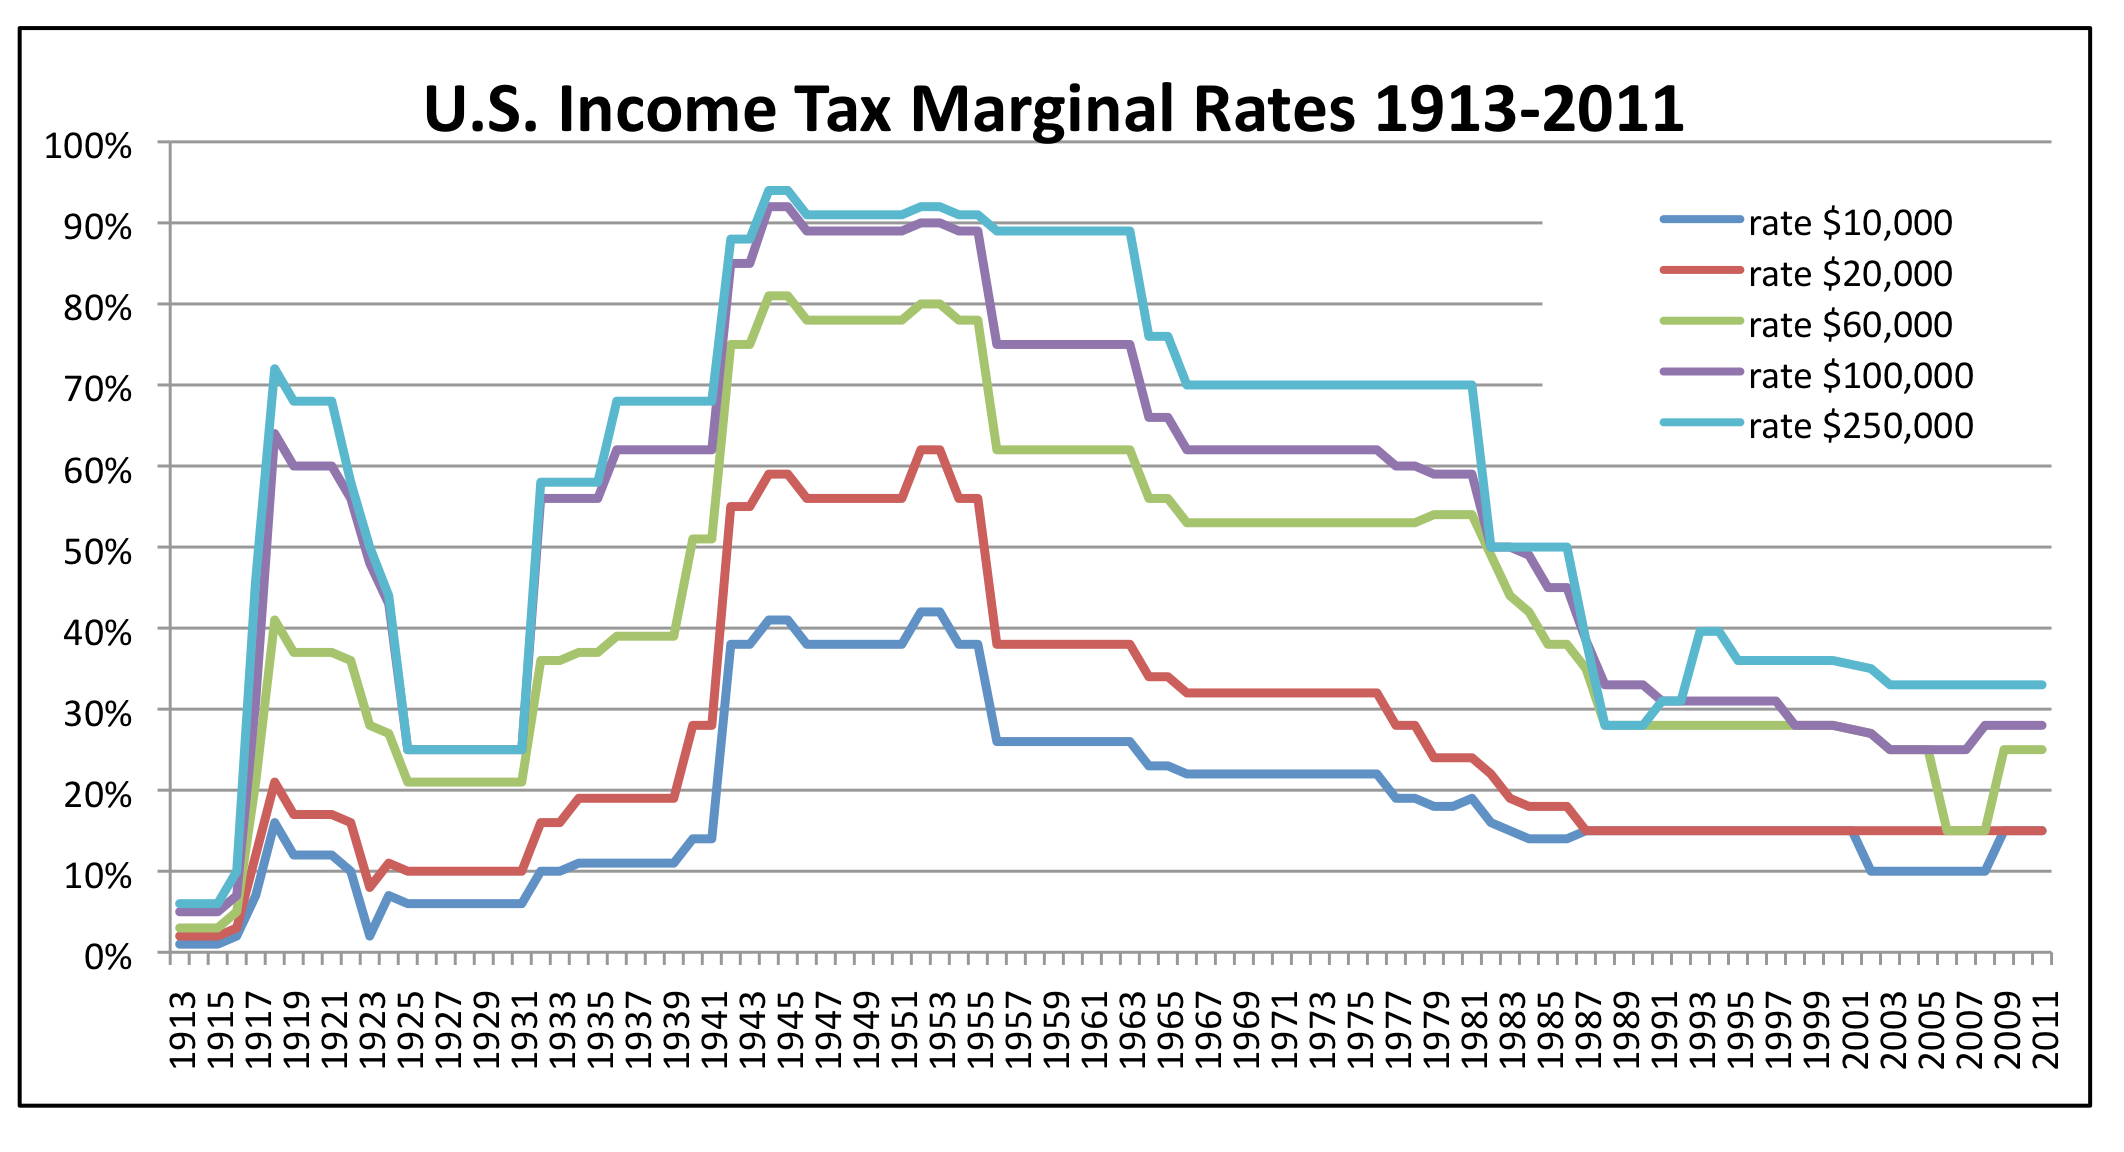 US Income Tax Marginal Rates since 1913